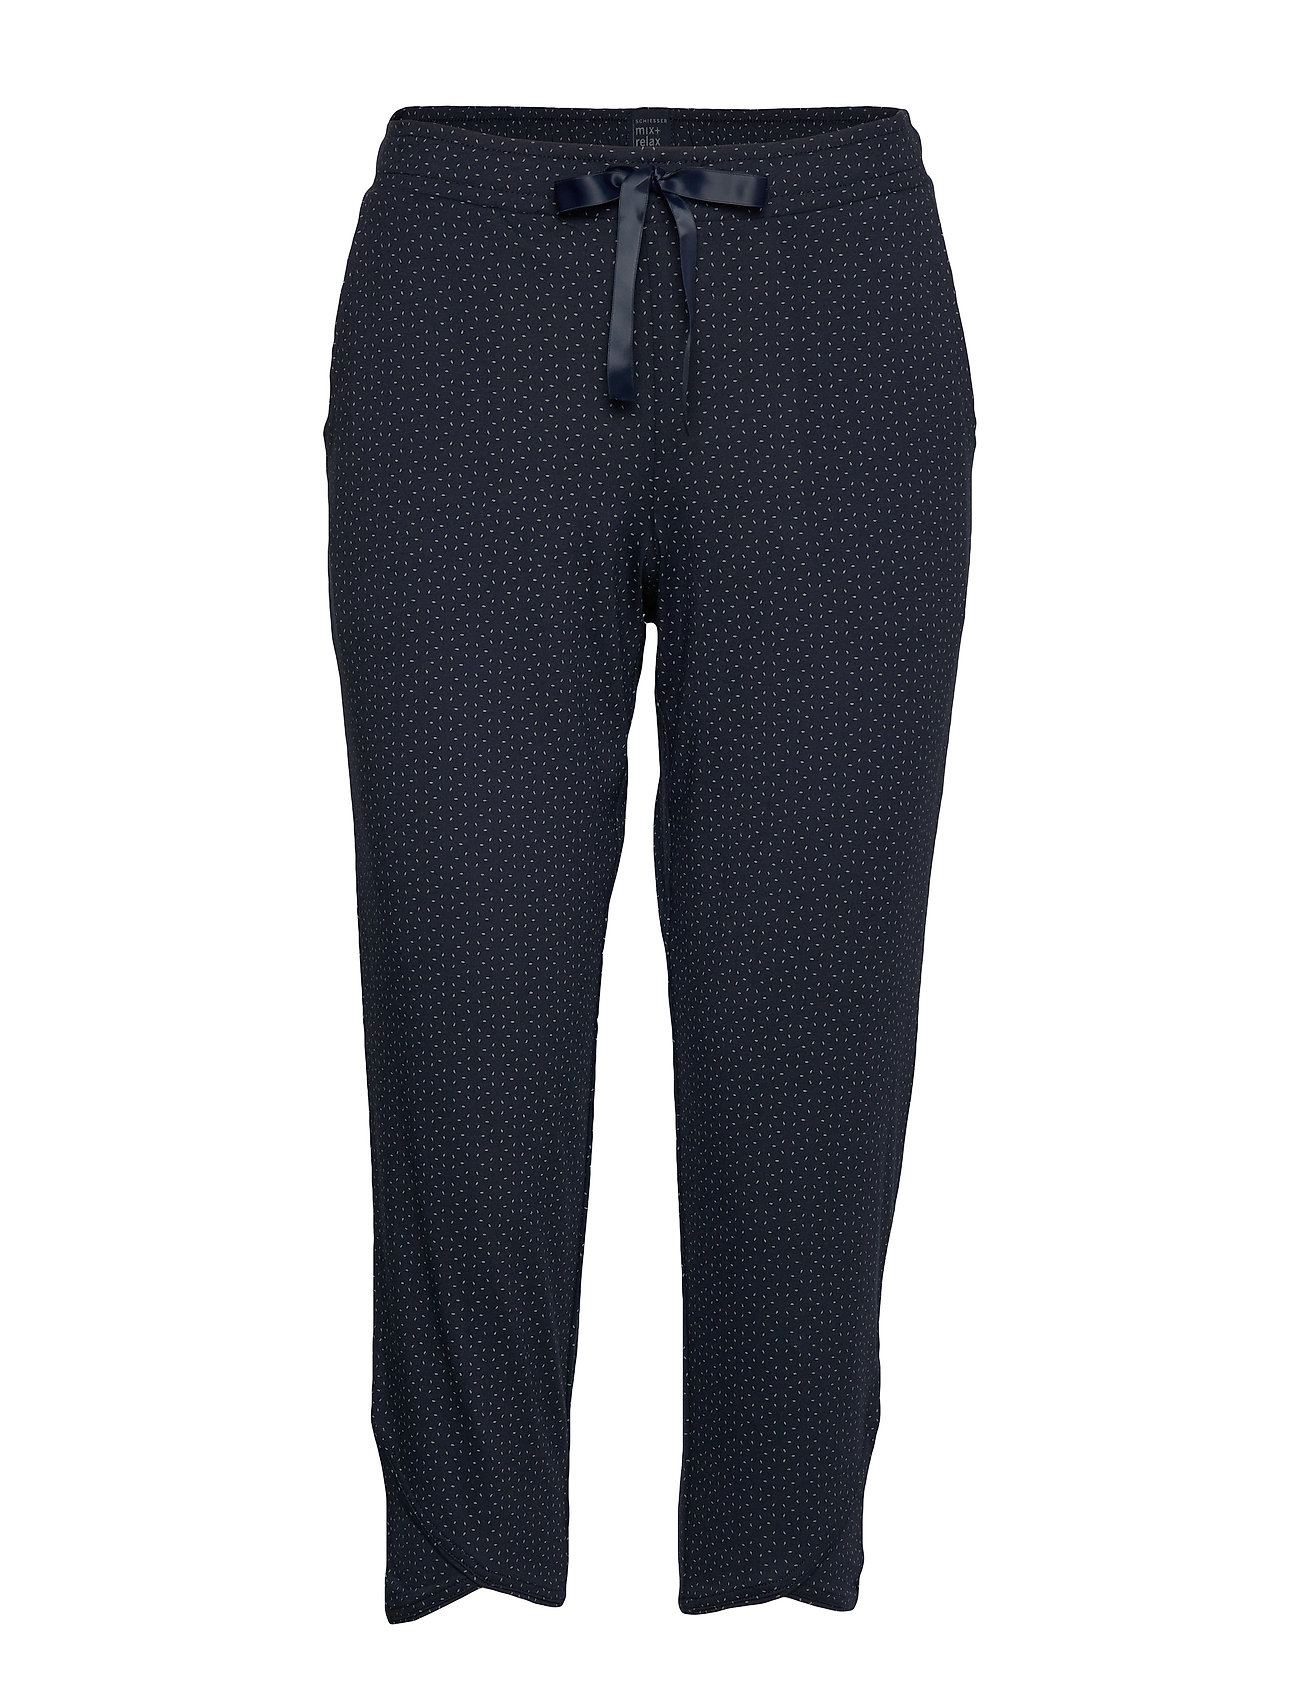 Schiesser Pants 3/4 - NIGHTBLUE